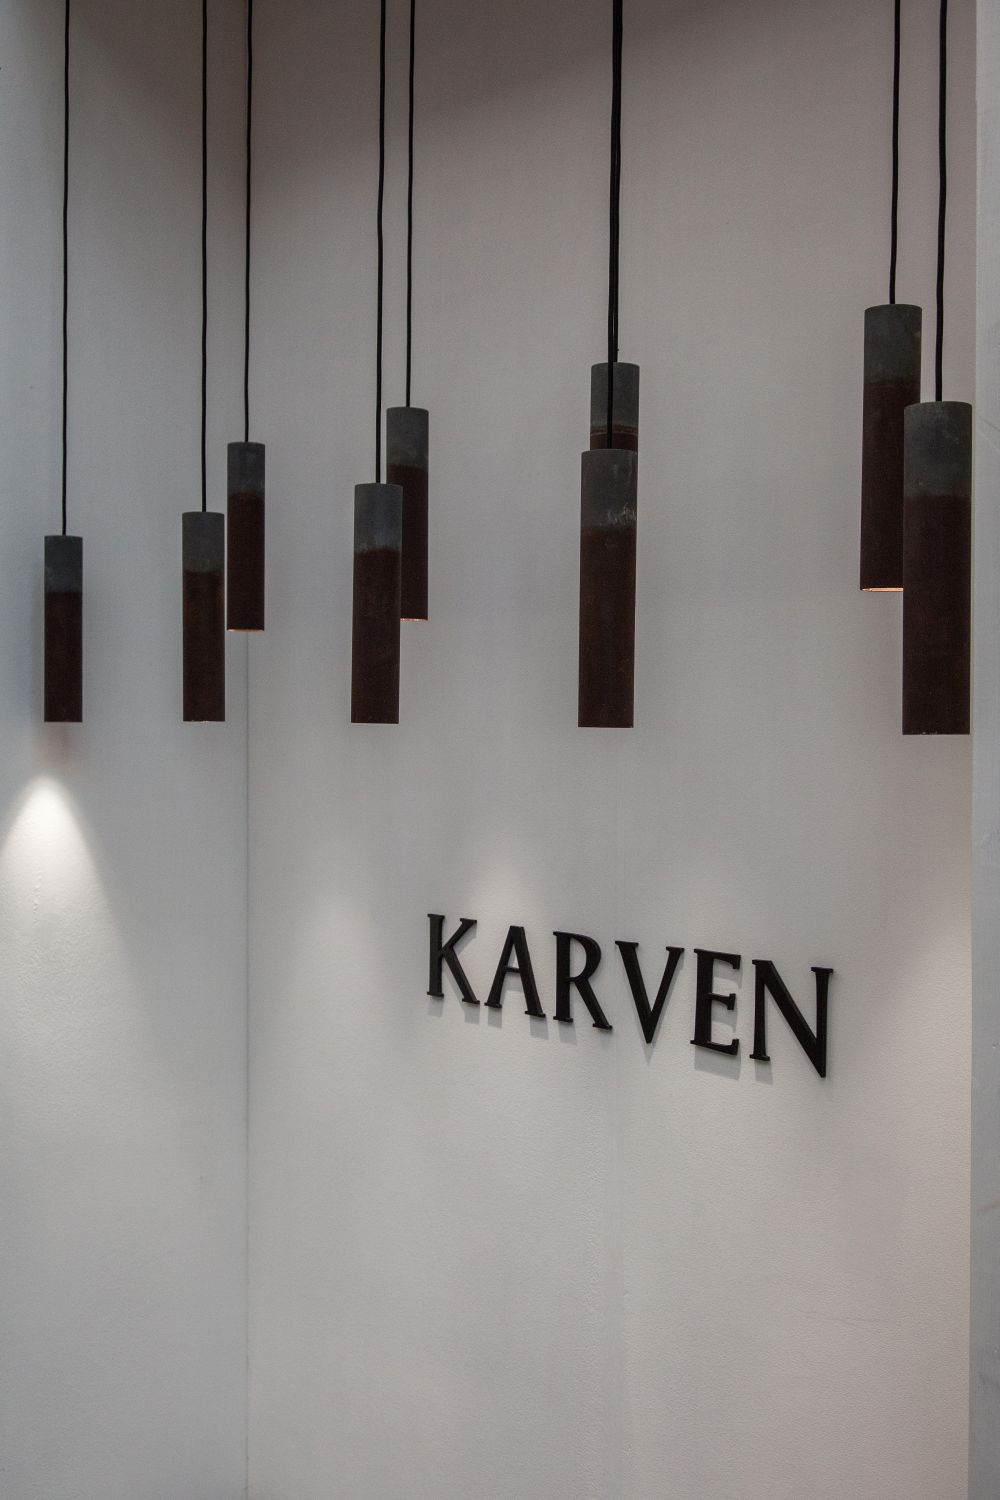 Karven Roest Pendant Light With Unfinished look